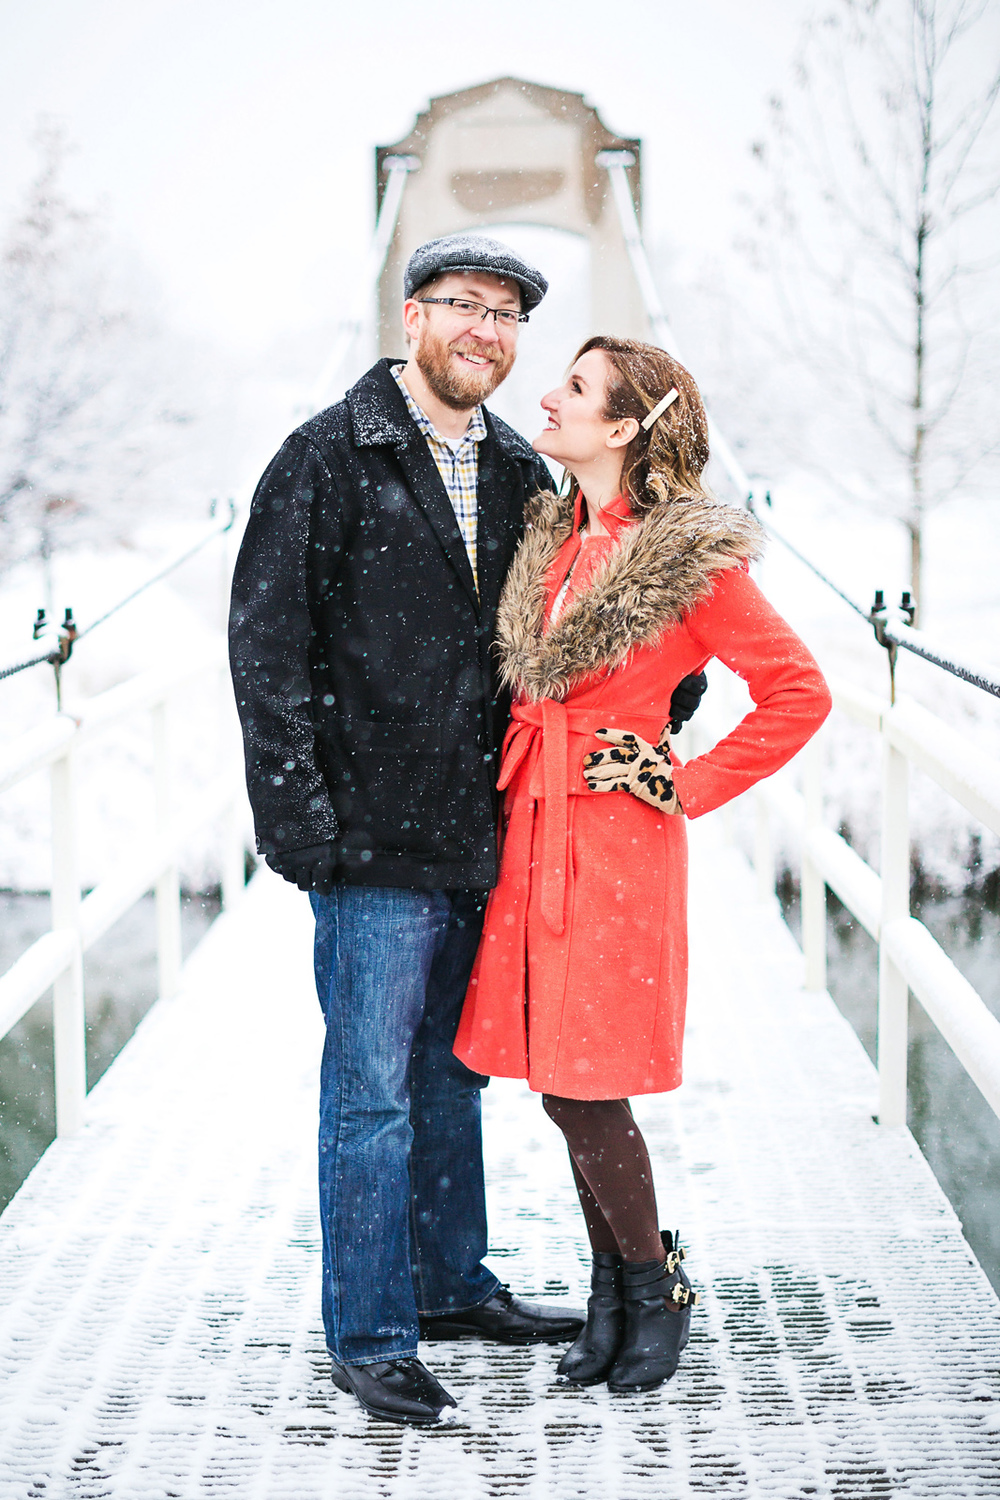 Oldani-Photography-St-Louis-Forest-Park-Engagement-Photos-Snow_20141116_17054400.jpg